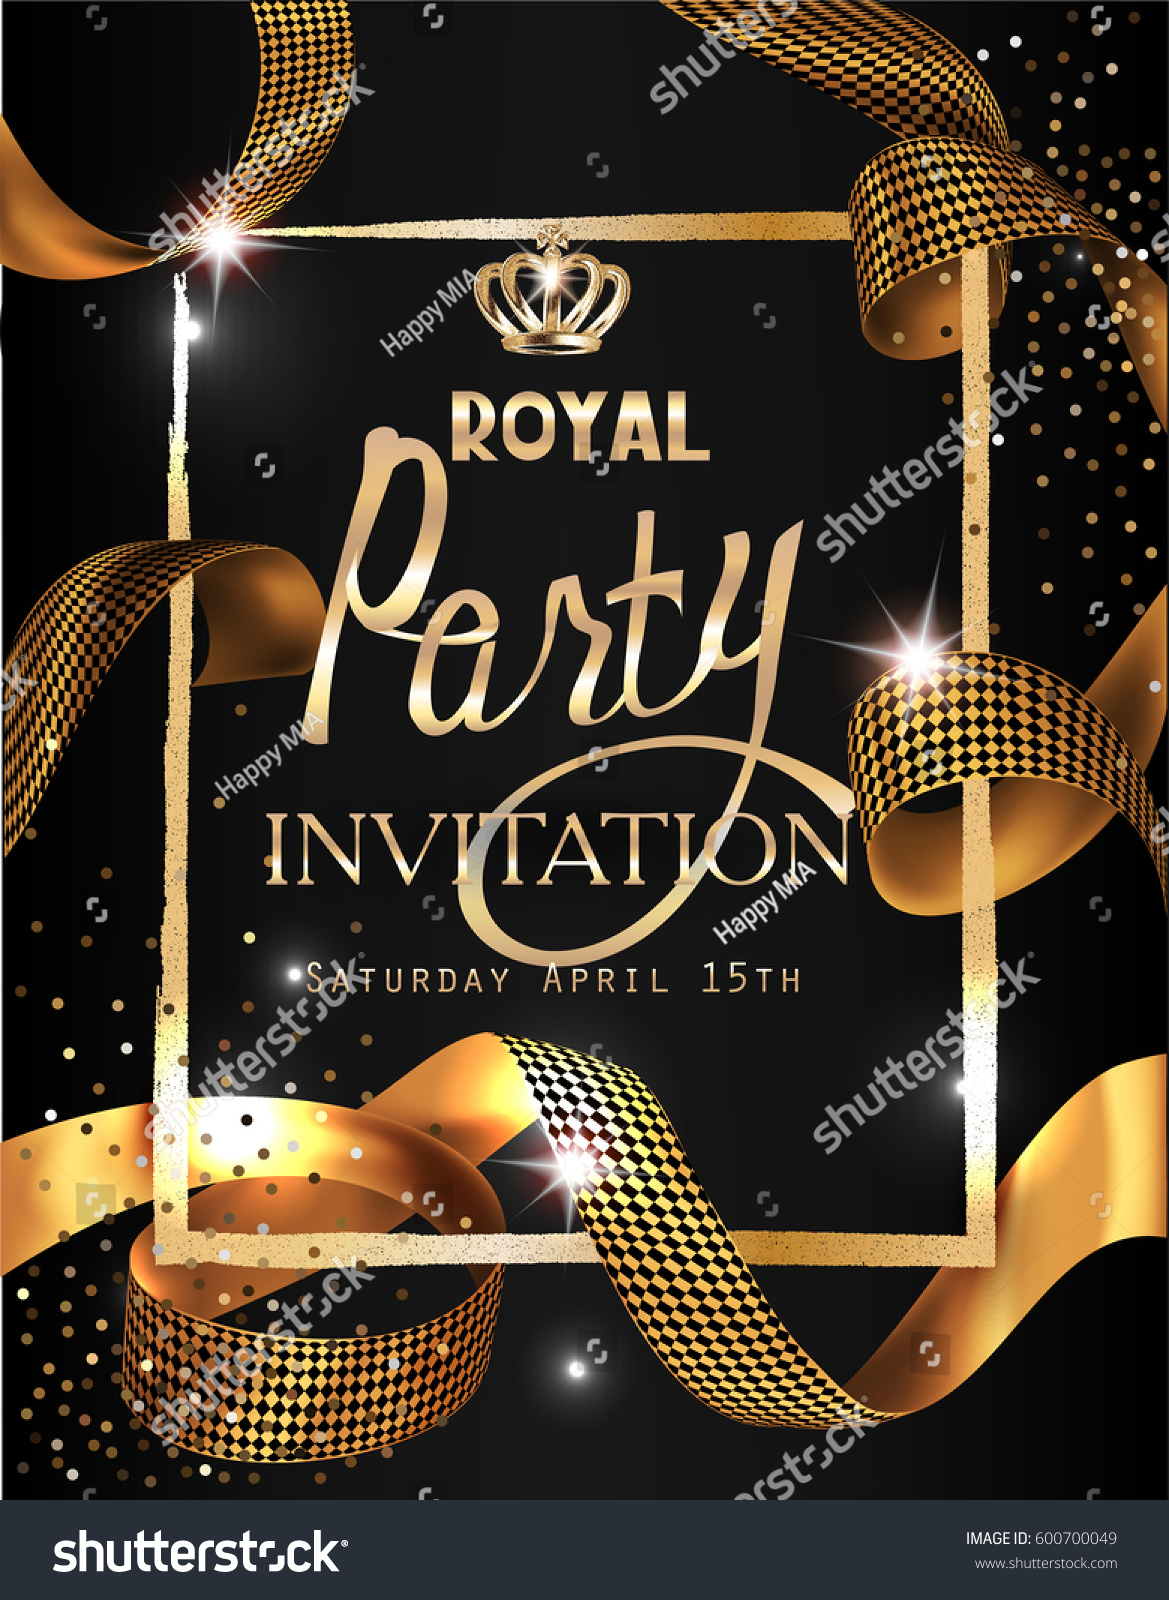 Royal party invitation card gold curly stock vector 600700049 royal party invitation card with gold curly ribbon textured frame and crown vector illustration stopboris Images